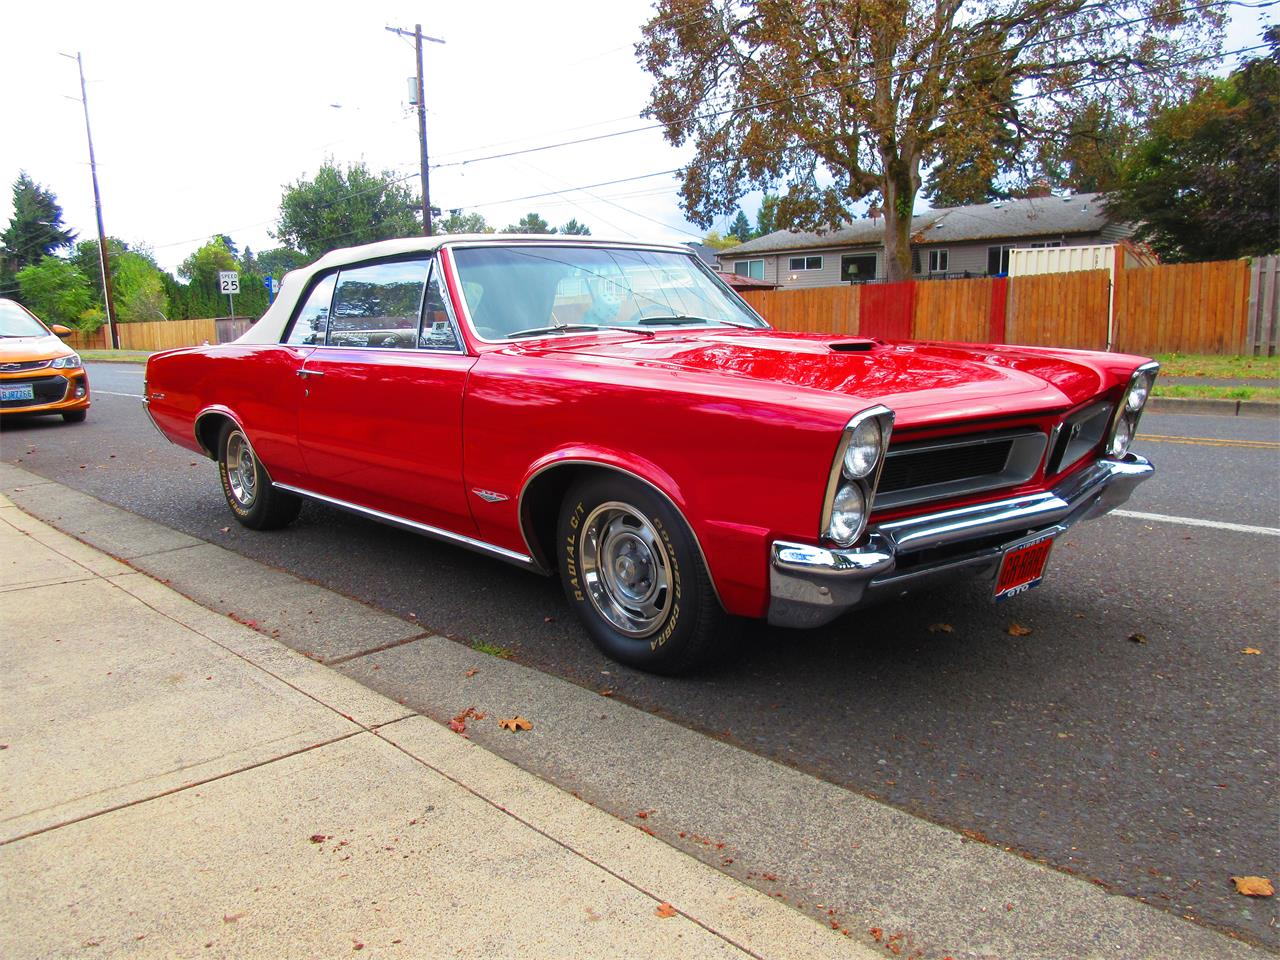 Large Picture of 1965 GTO located in Portland Oregon Offered by a Private Seller - OQVM